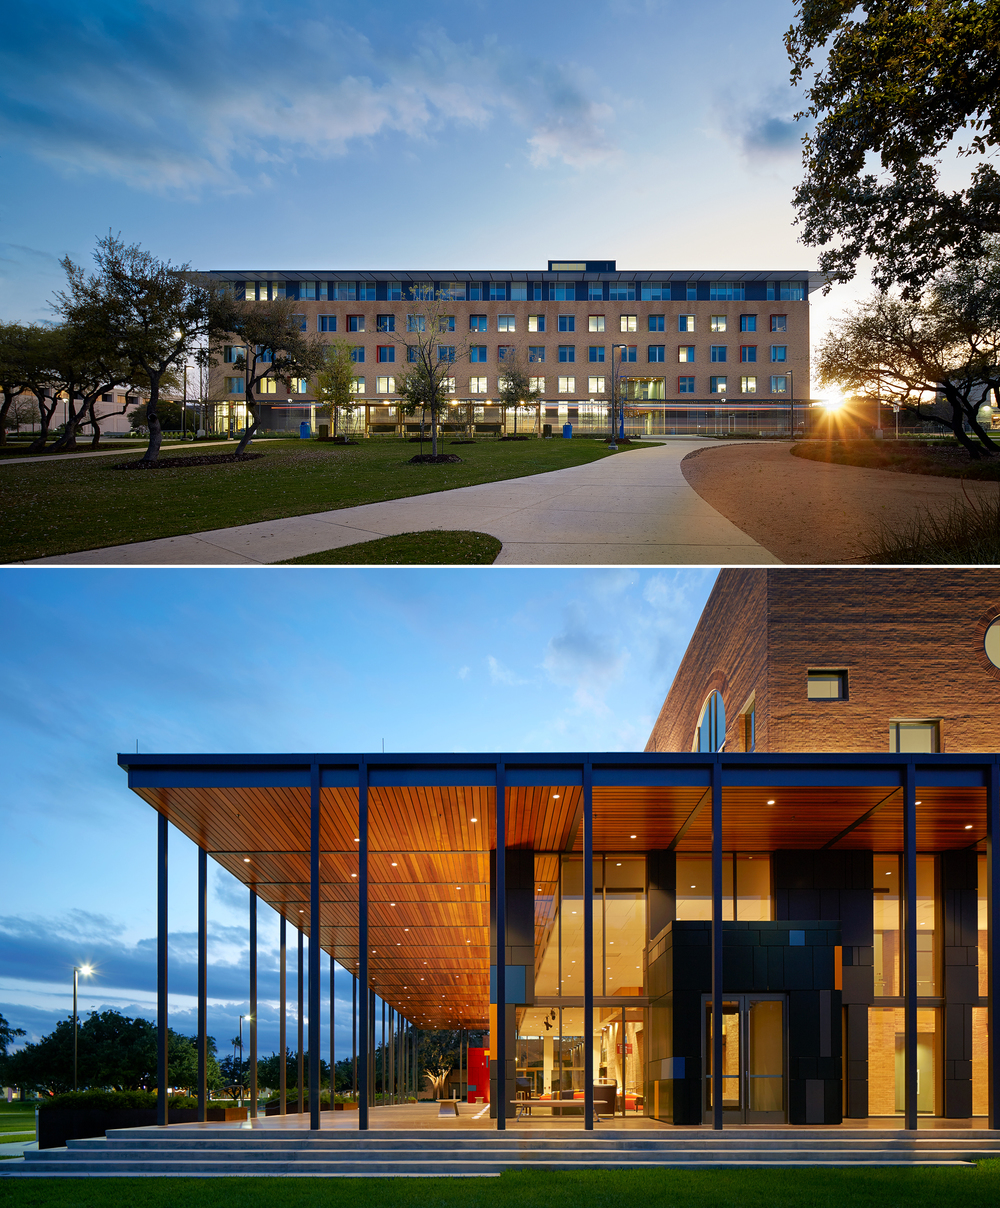 Top: UTSA-North Campus Building   Bottom: UTPA-Performing Arts Building